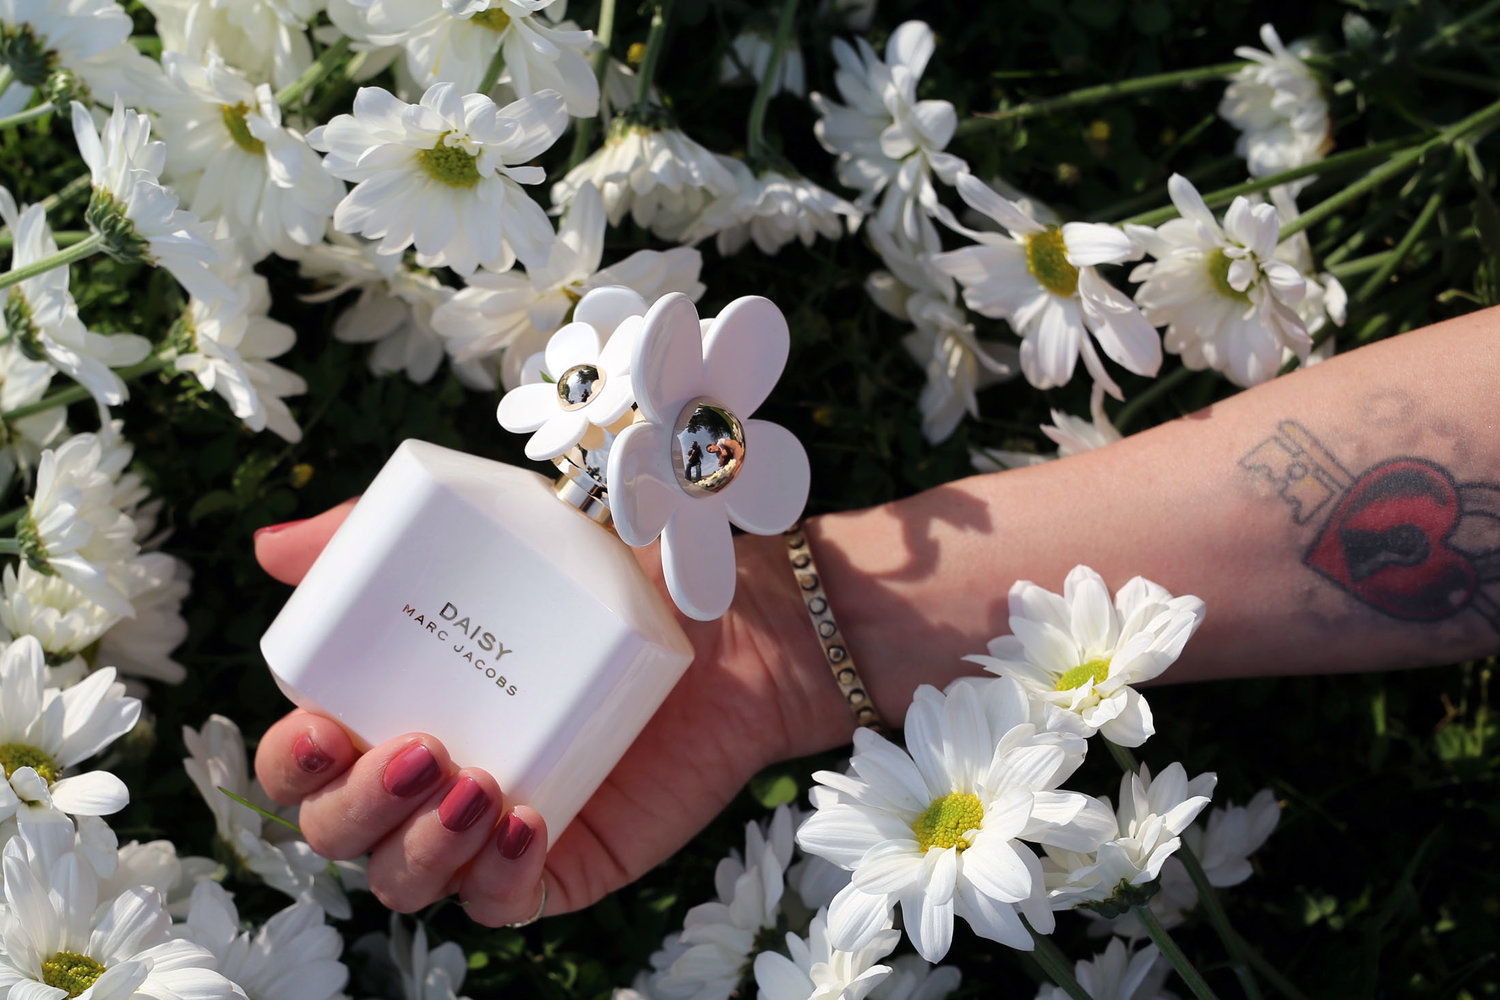 Marc Jacobs Daisy Celebrates 10 years with a limited edish bottle ...